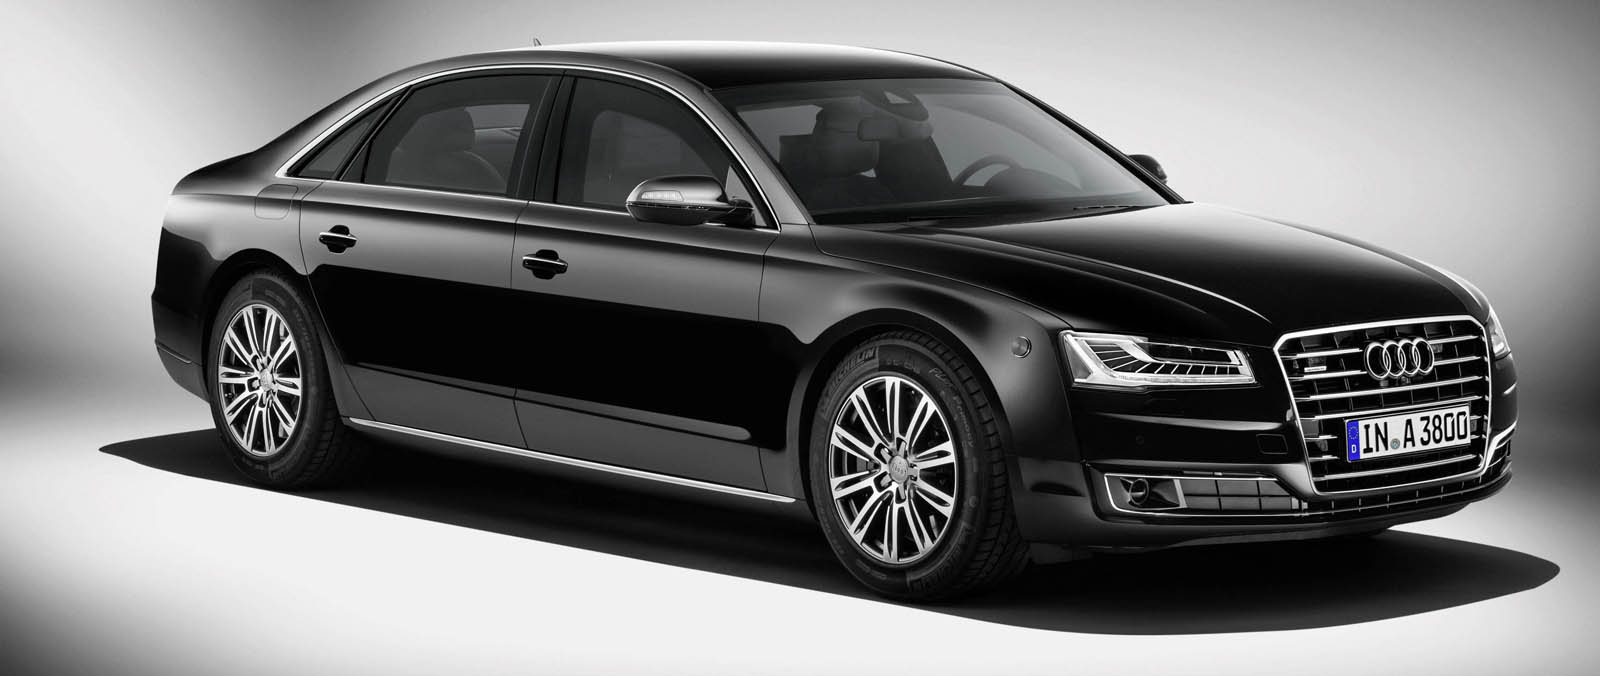 Audi A8 L Security is veiligste Audi